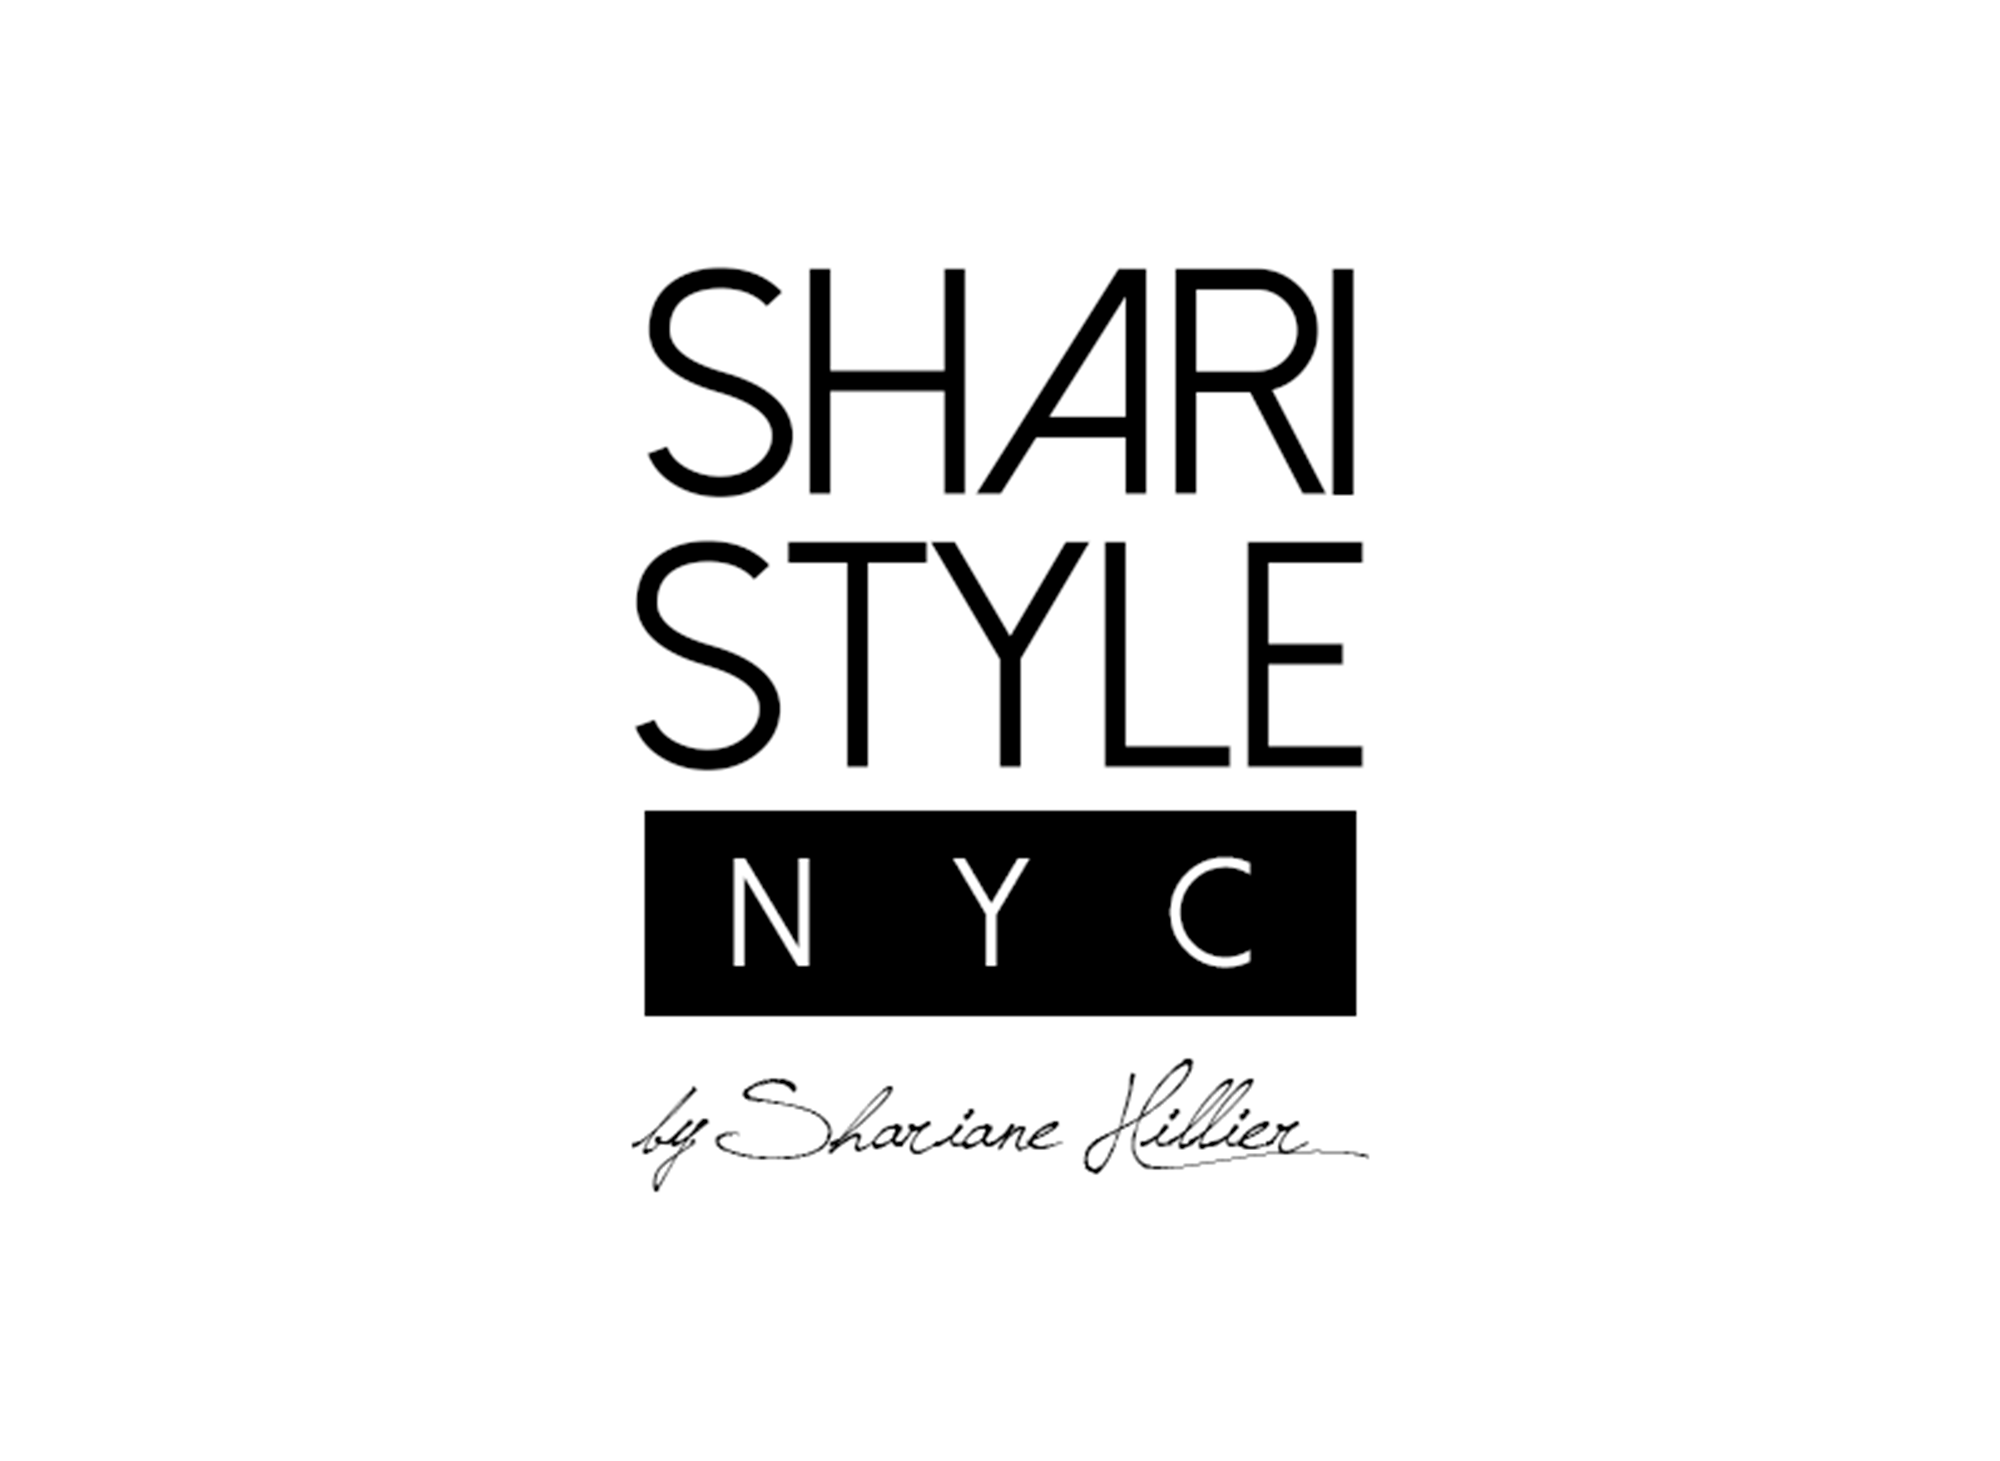 blog-shari-style-nyc-clientes-atendidos-agencia-diretriz-digital-marketing-fortaleza